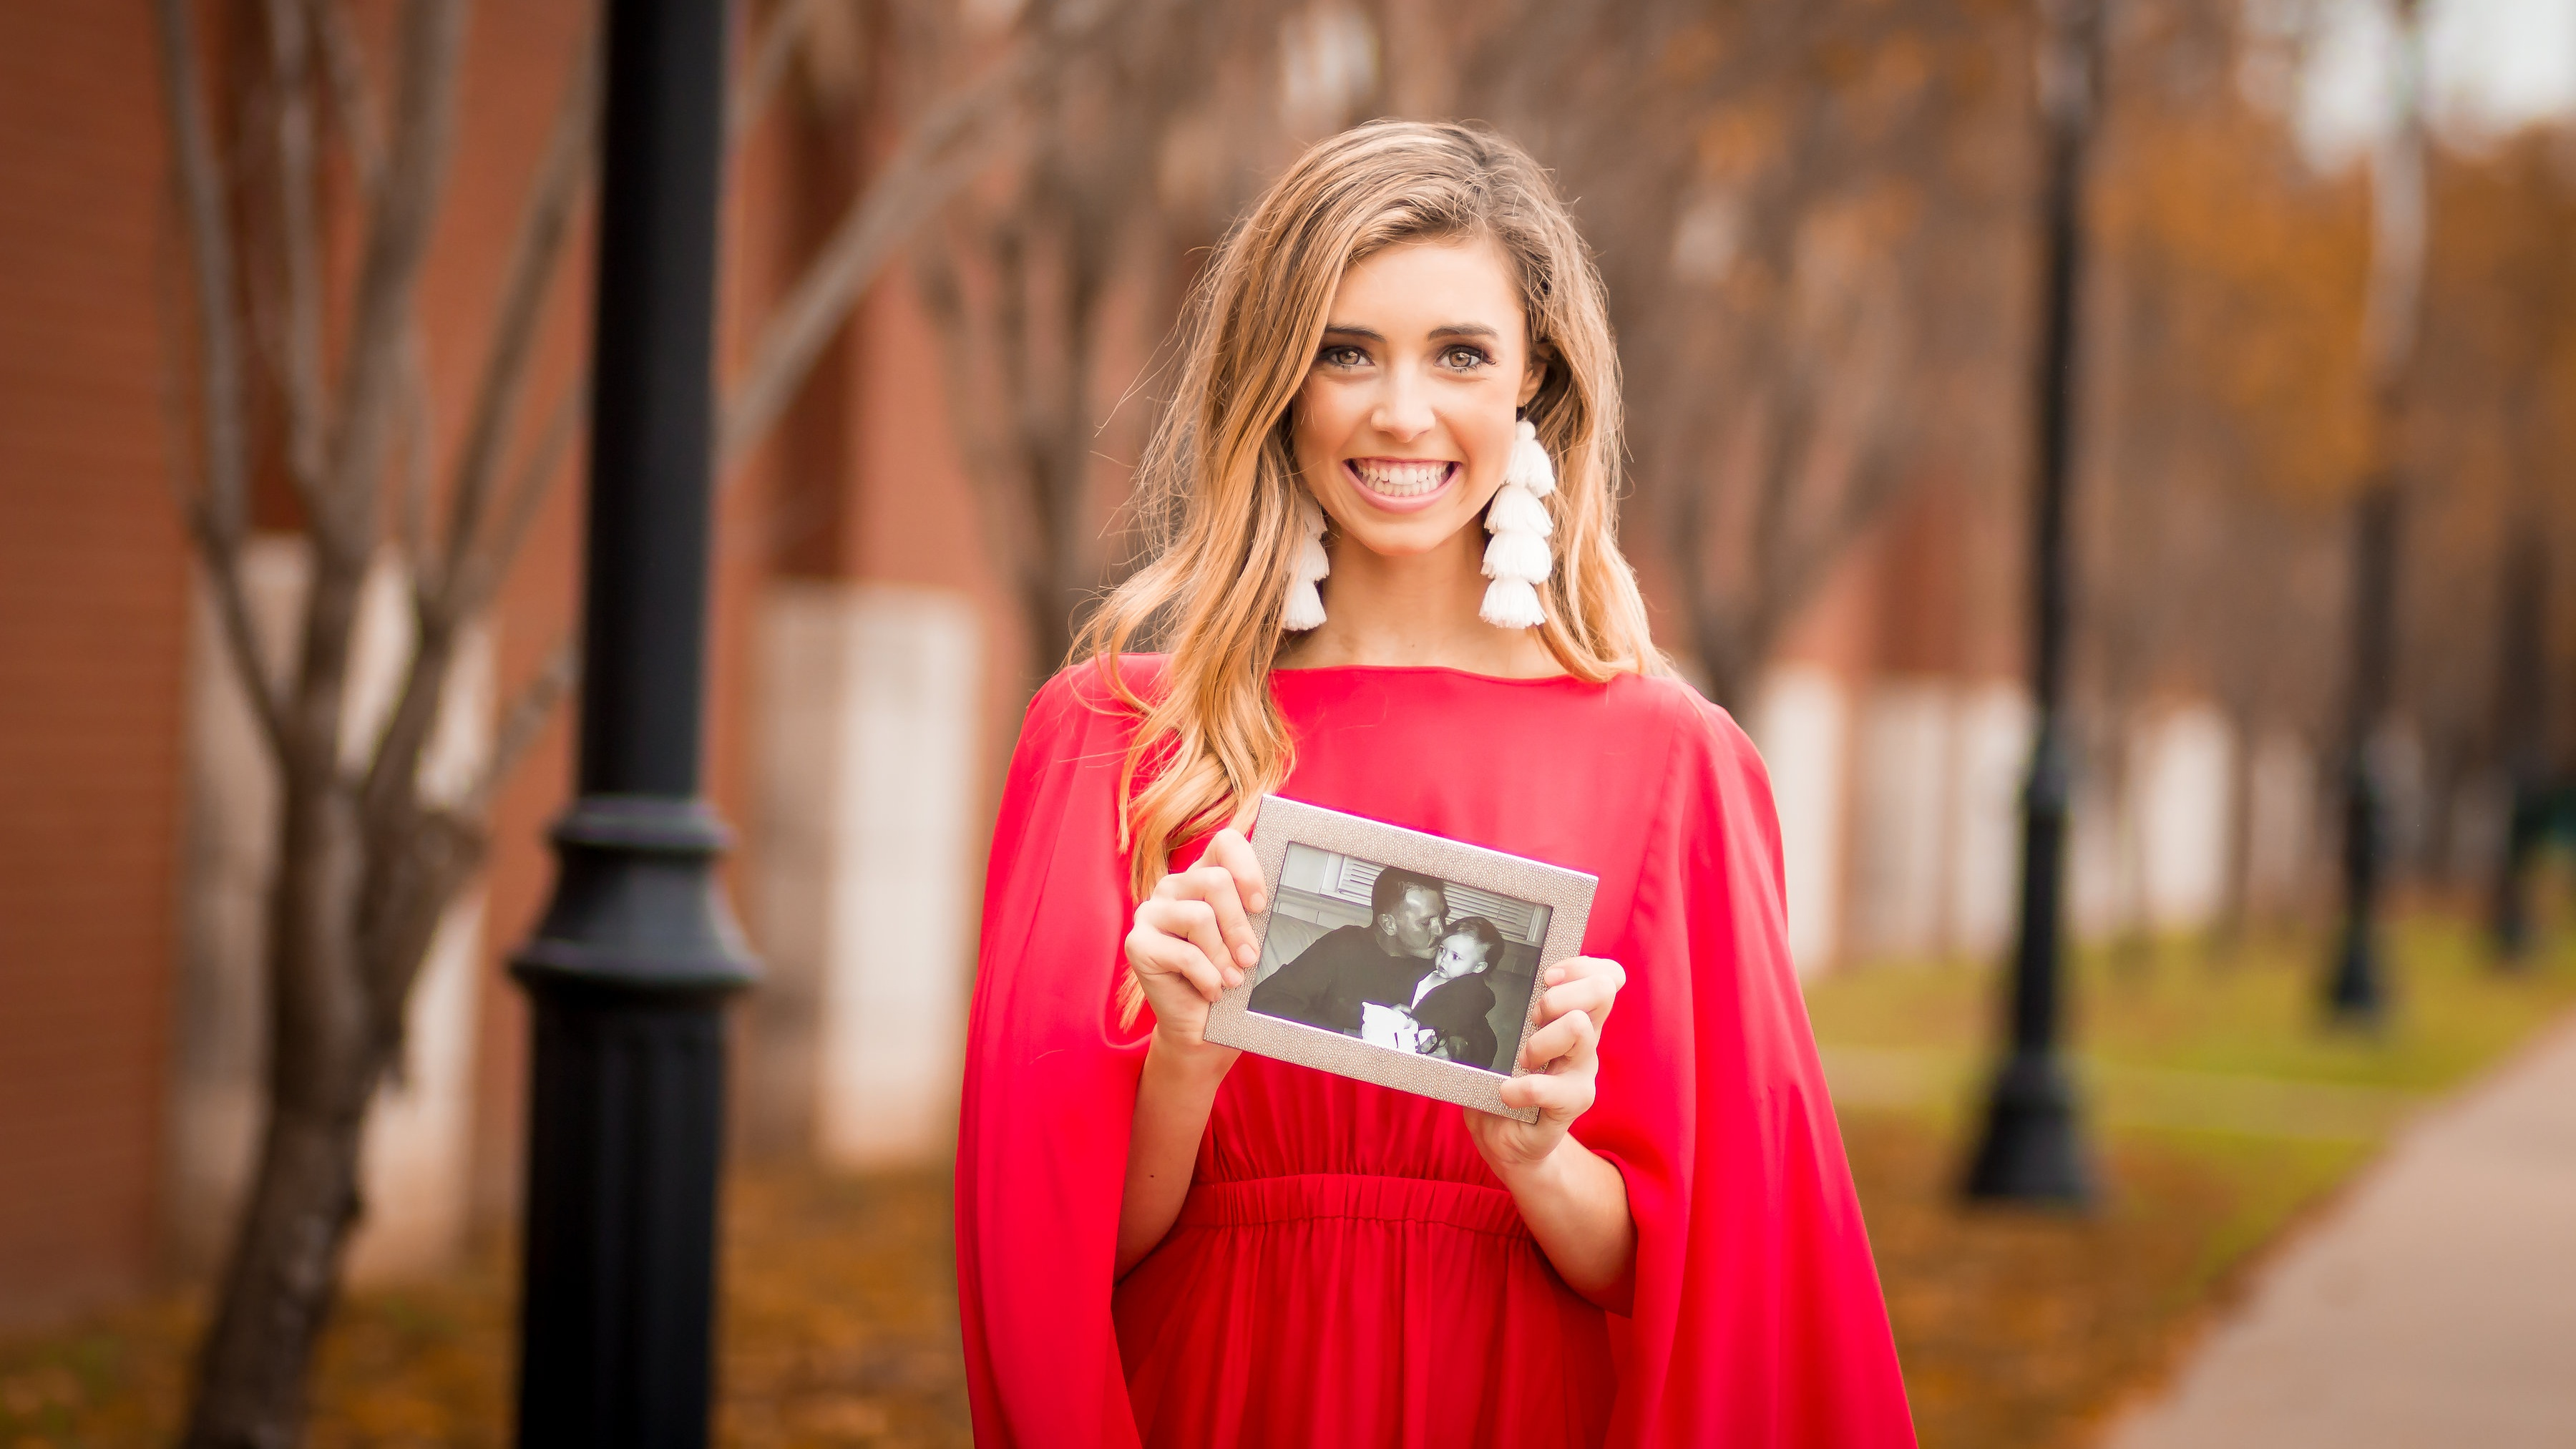 Abby Davis holding a photo